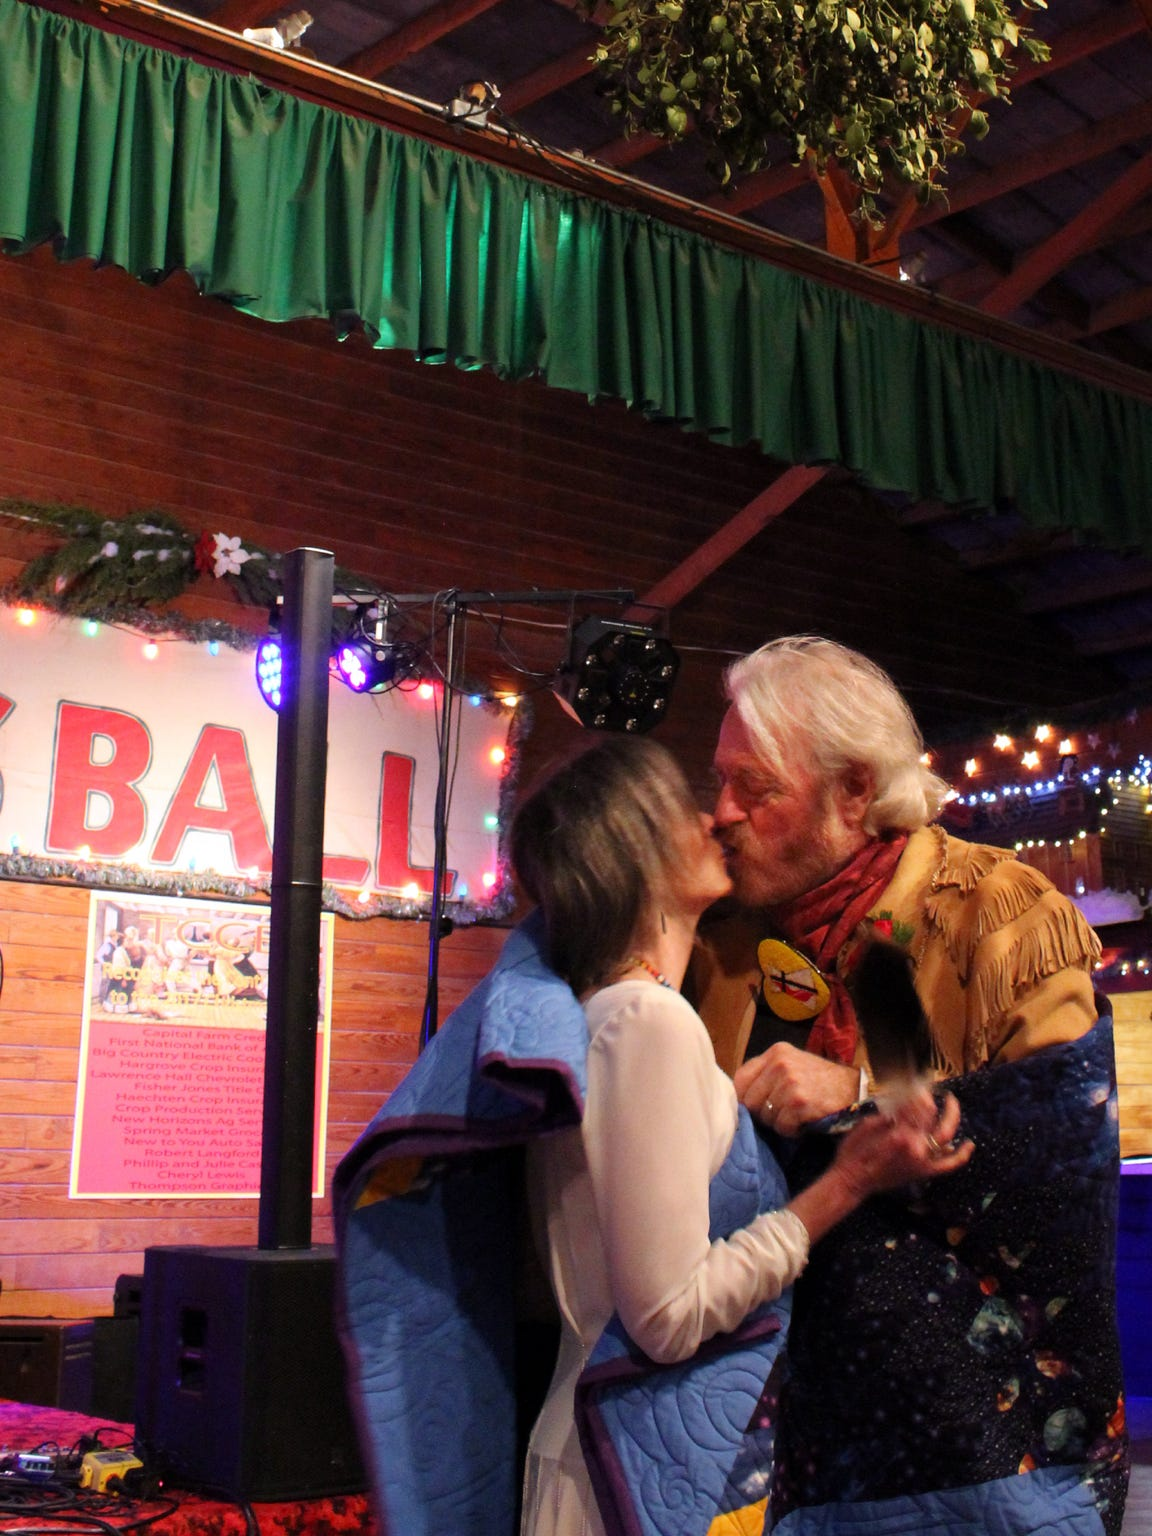 Newlyweds Cynthia Tune and Michael Martin Murphey kiss, several times, under the mistletoe at Pioneer Hall in Anson, where they married Dec. 16.